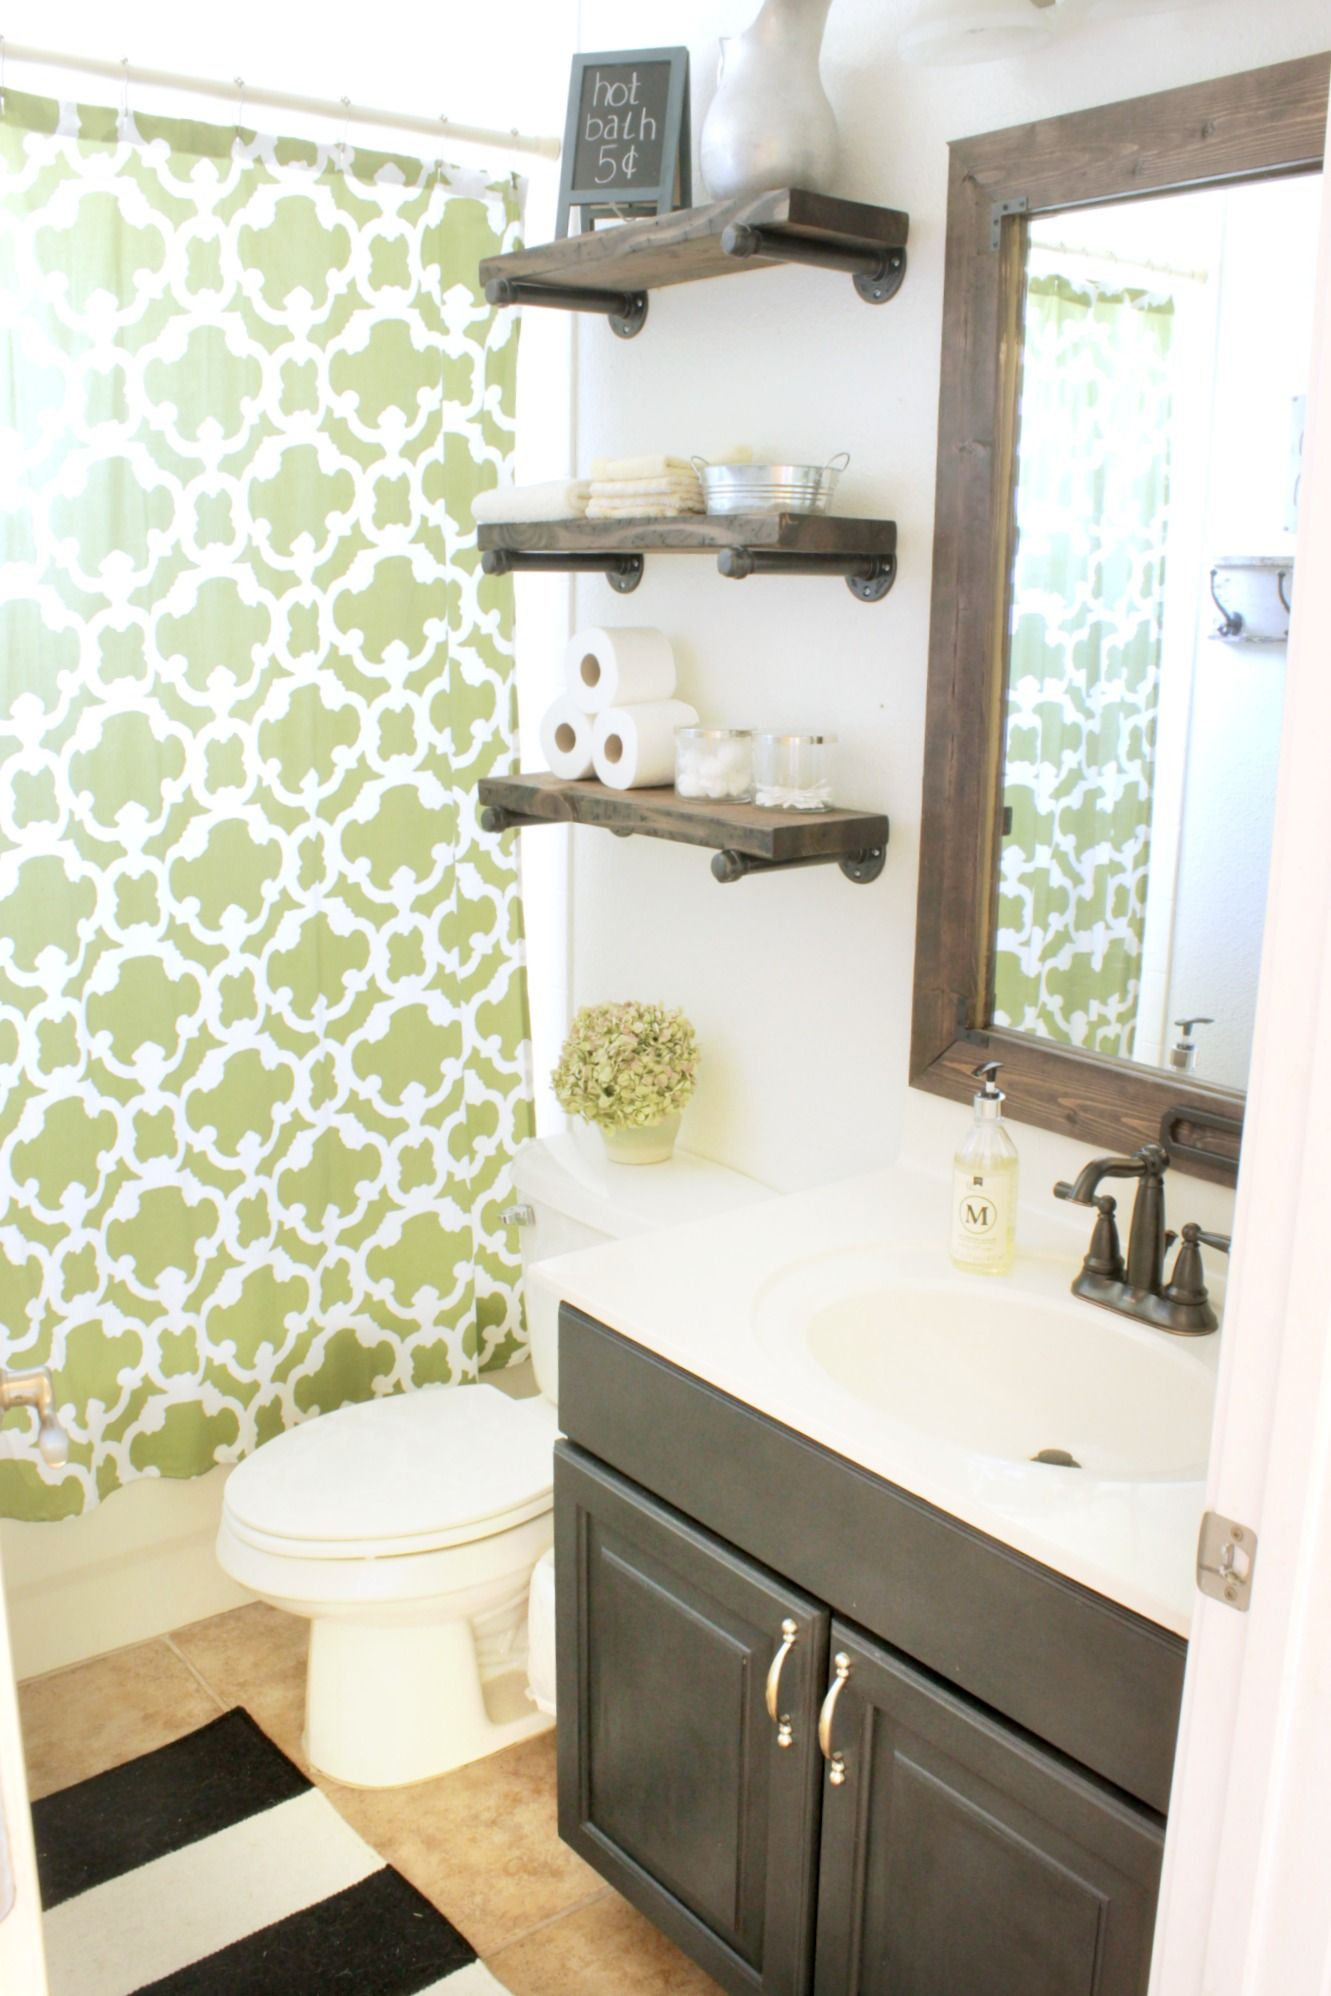 Bathroom update | For the Home | Pinterest | Guest bath and Bath